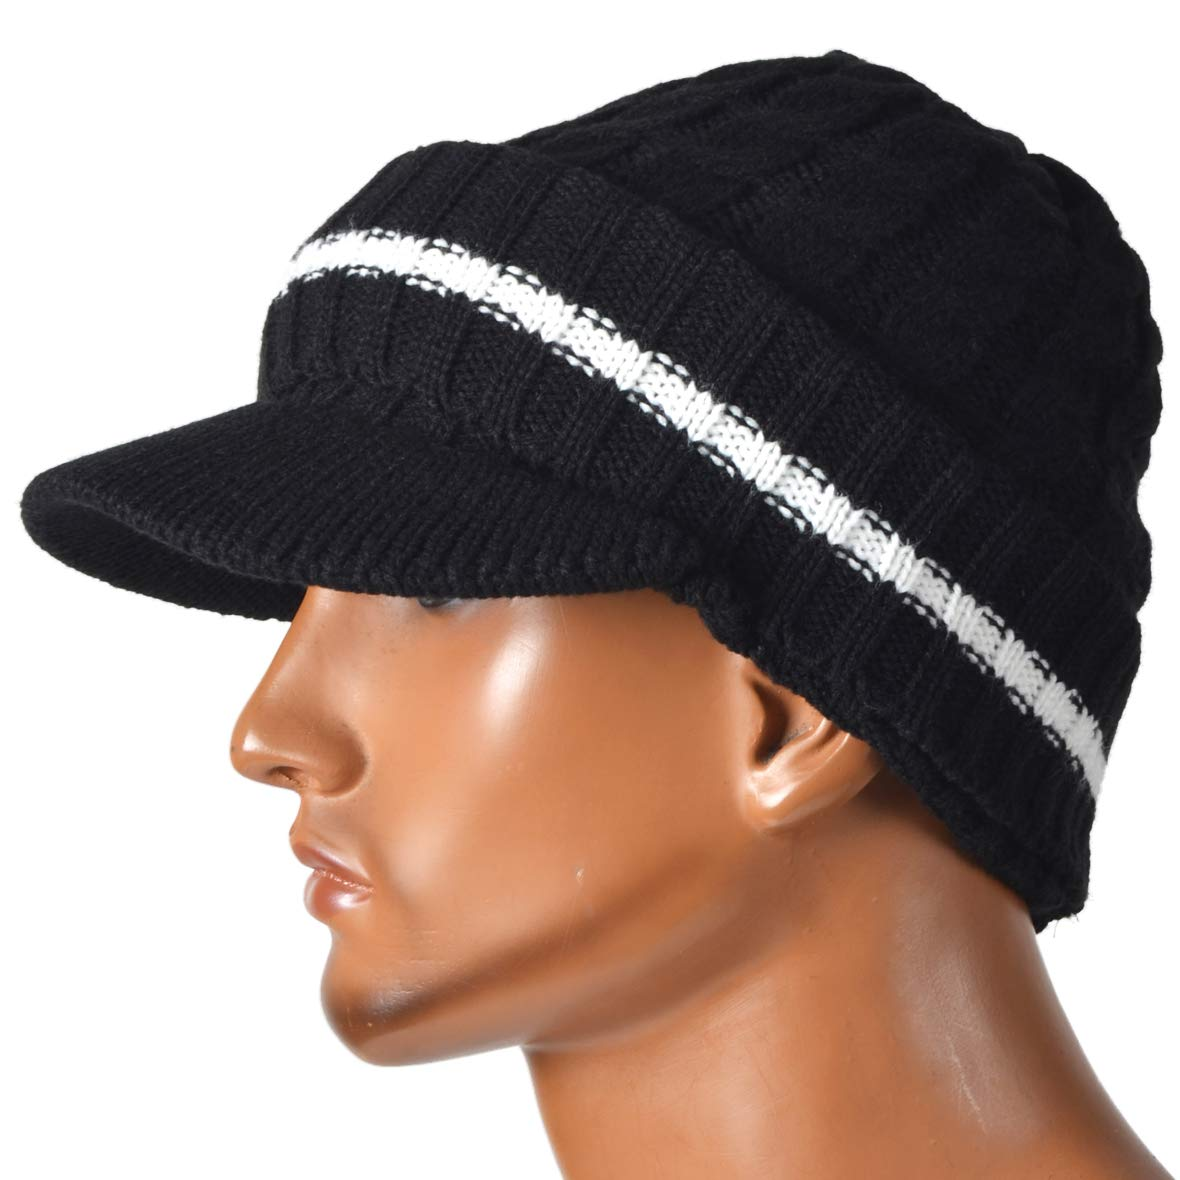 a5fa63b545b Retro Newsboy Knitted Hat with Visor Bill Winter Warm Hat for Men (Black)  at Amazon Men s Clothing store